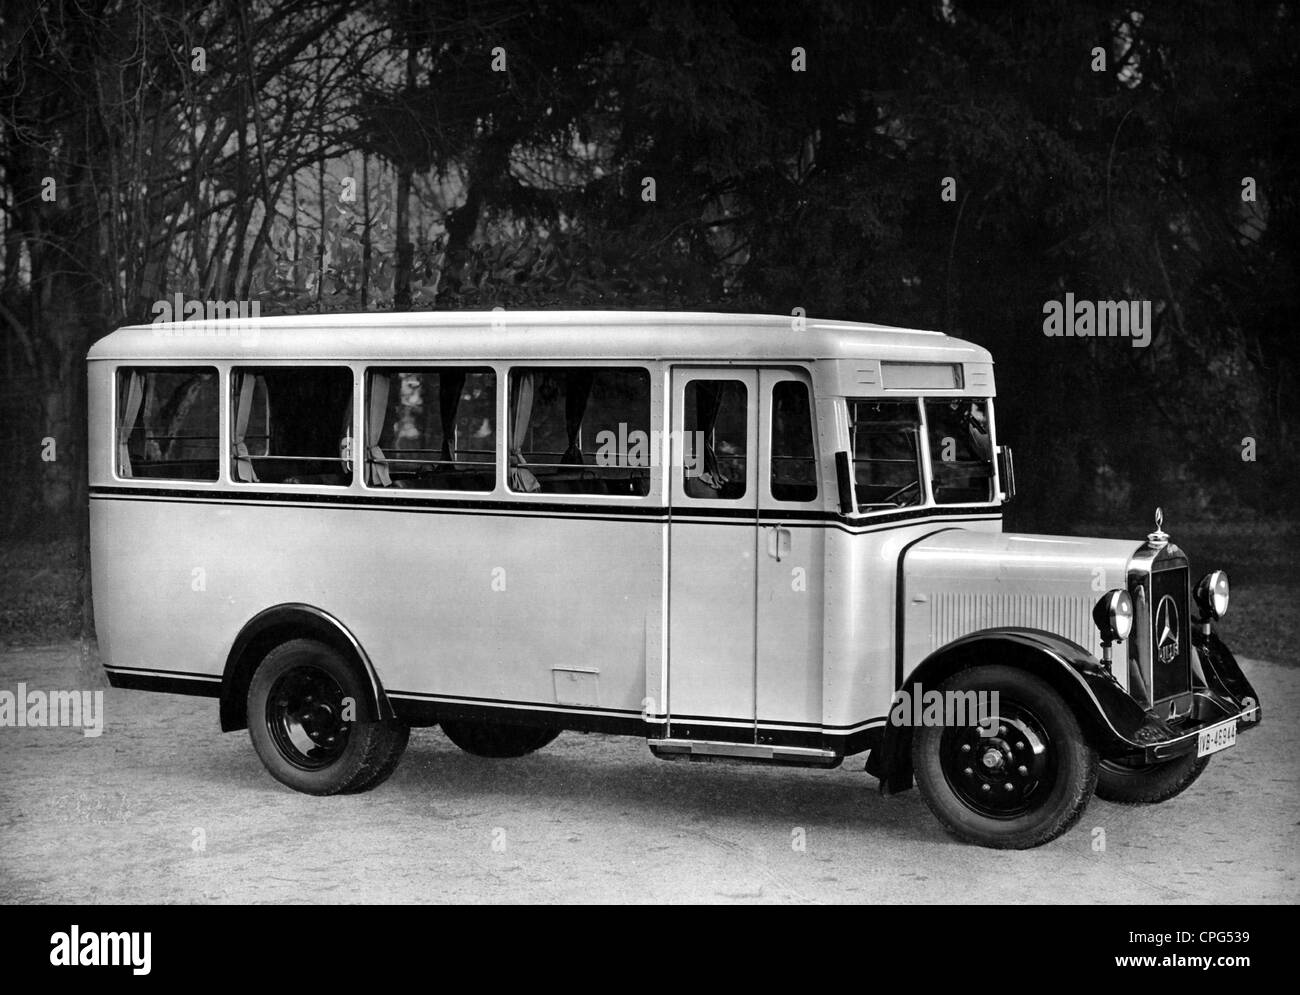 Transport Transportation Car Vehicle Variants Mercedes Motor Stock Photo Royalty Free